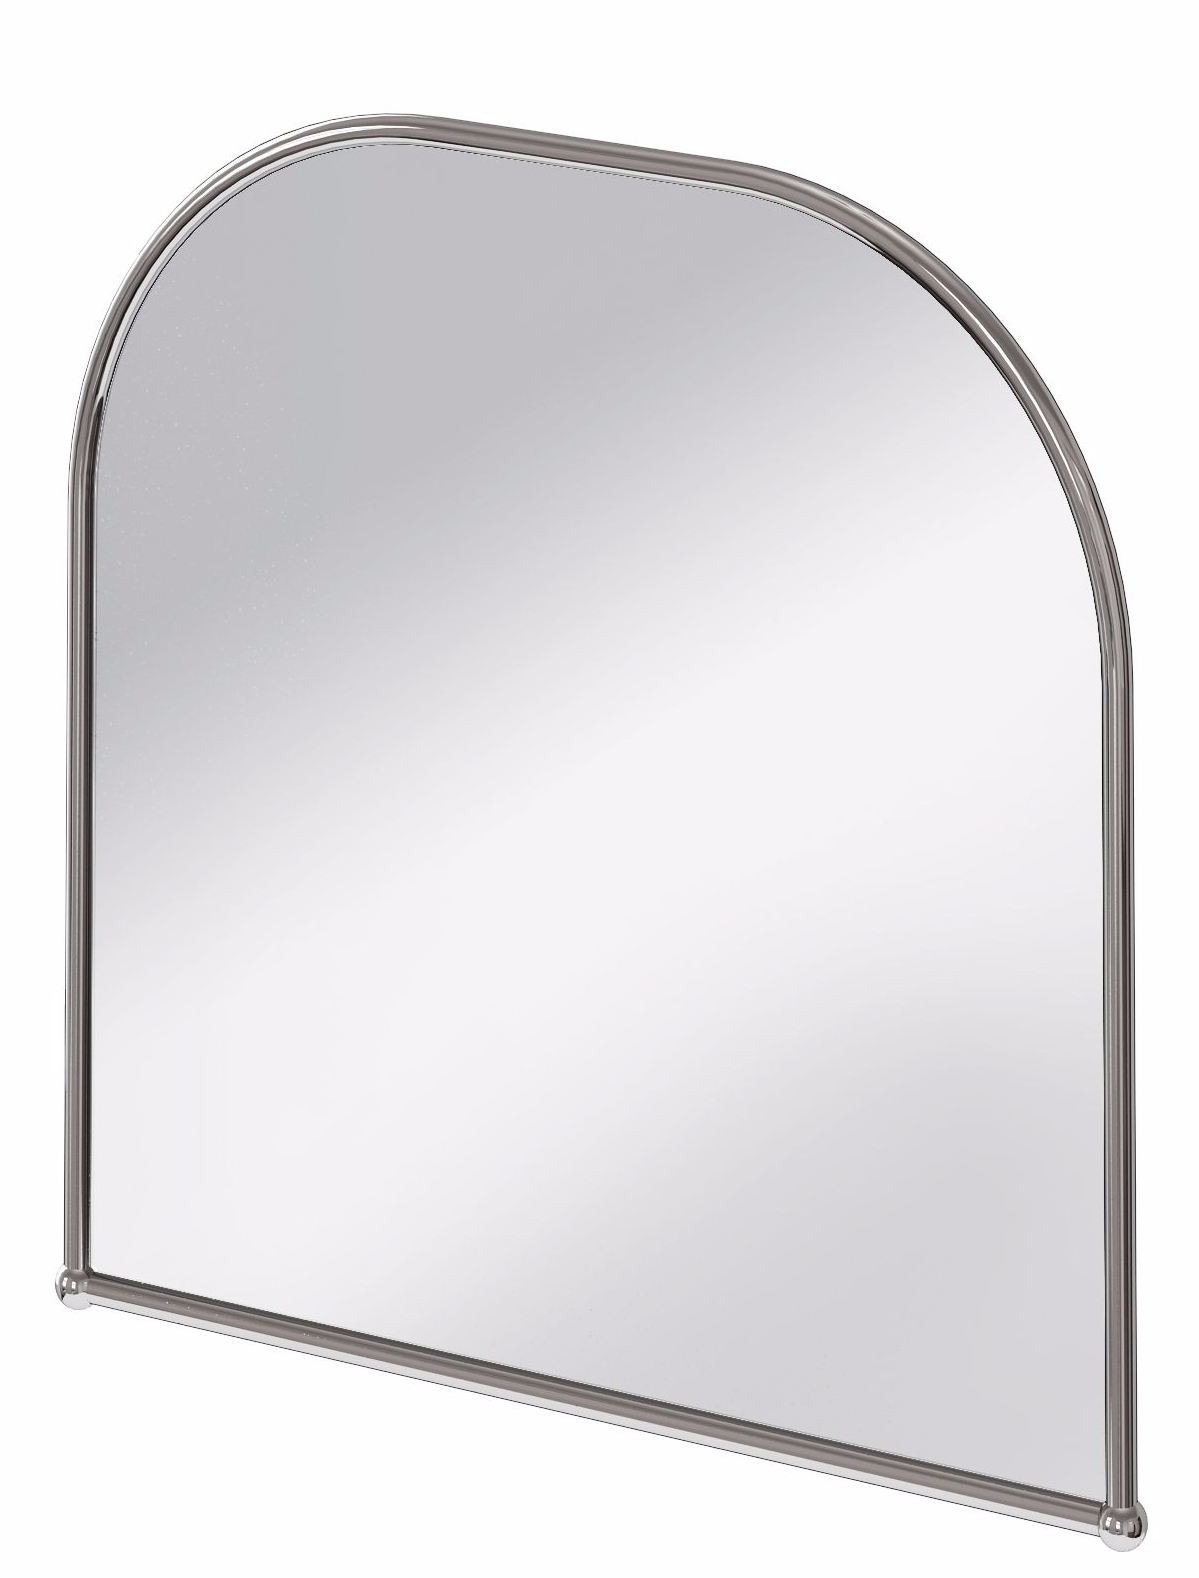 Burlington Curved Top Polished Stainless Steel Framed Traditional throughout Curved Top Mirrors (Image 5 of 15)